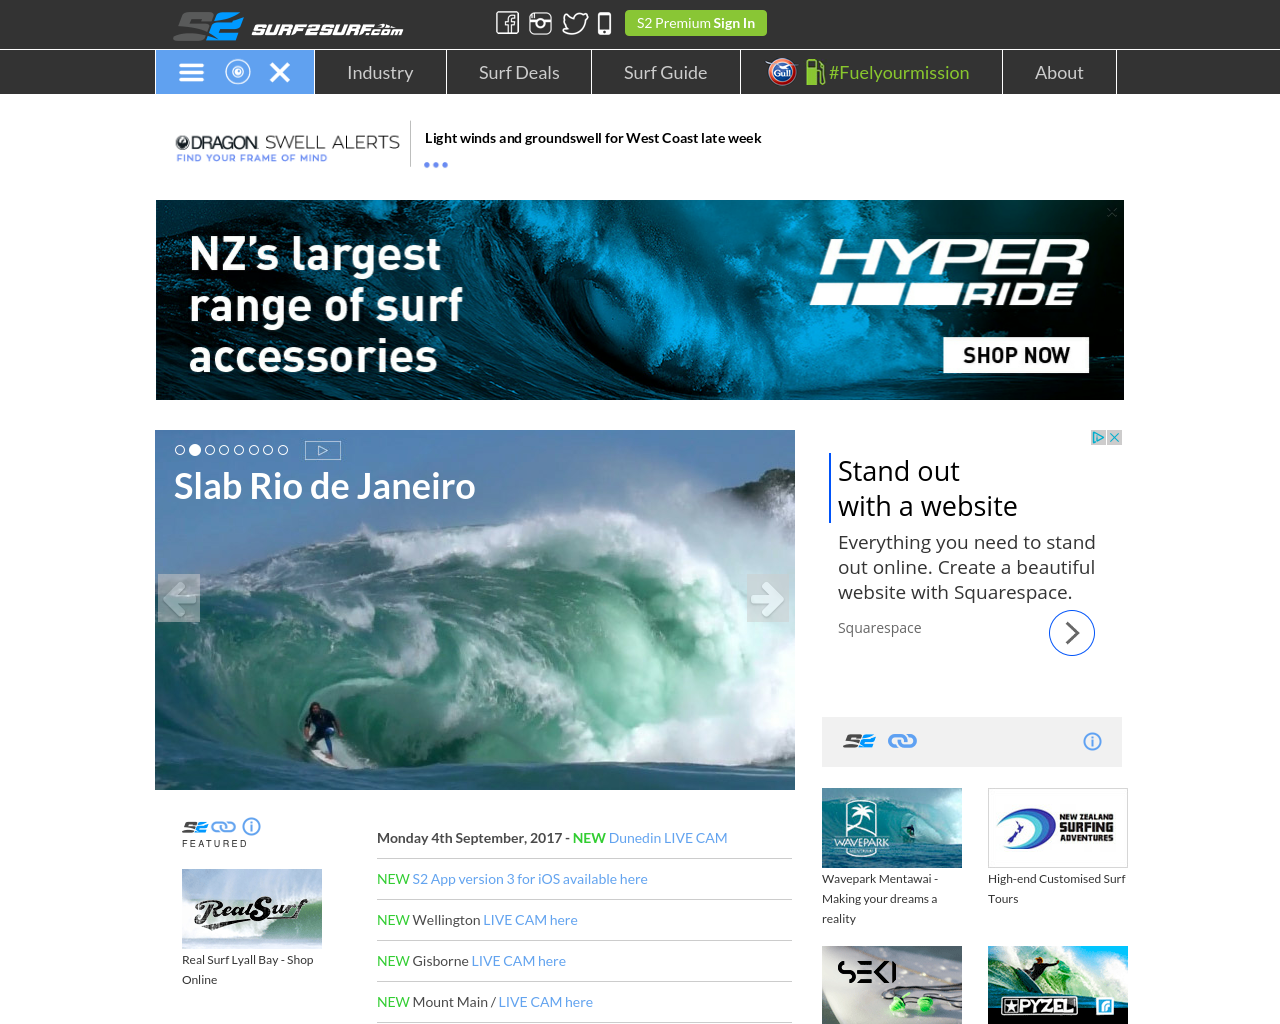 S2-Surf2Surf-Advertising-Reviews-Pricing